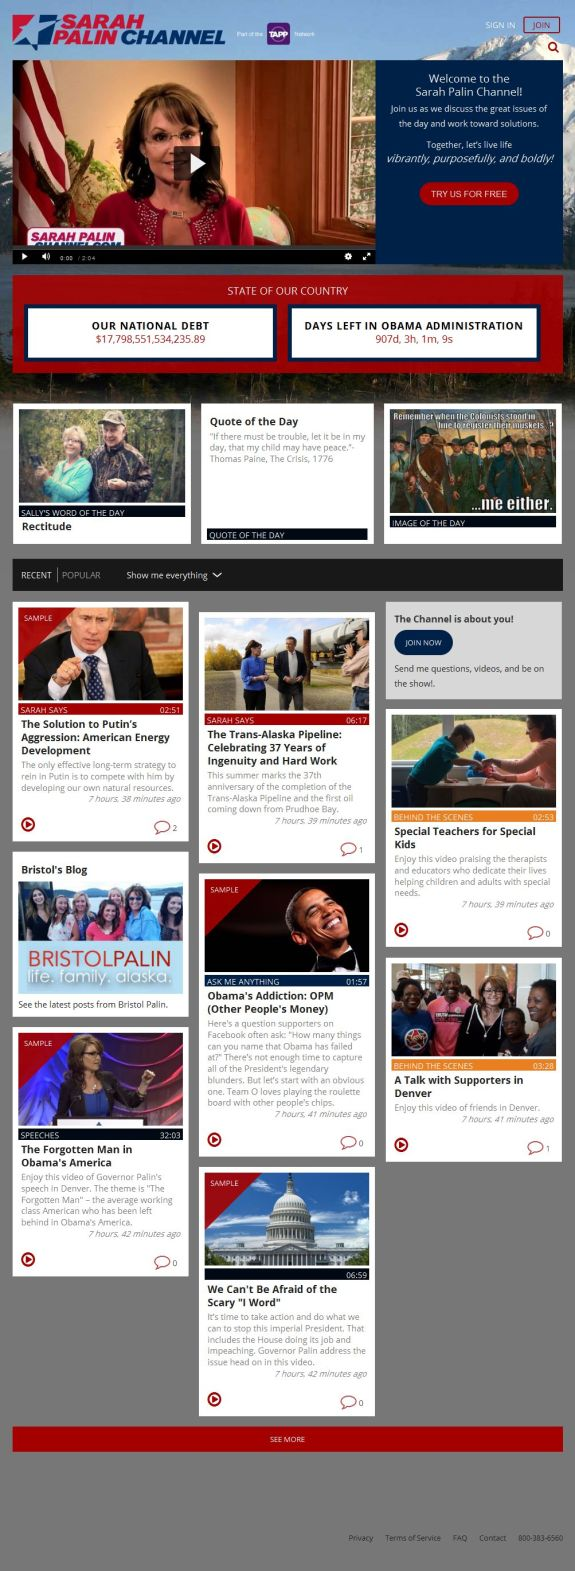 Sarah Palin Channel Home Page